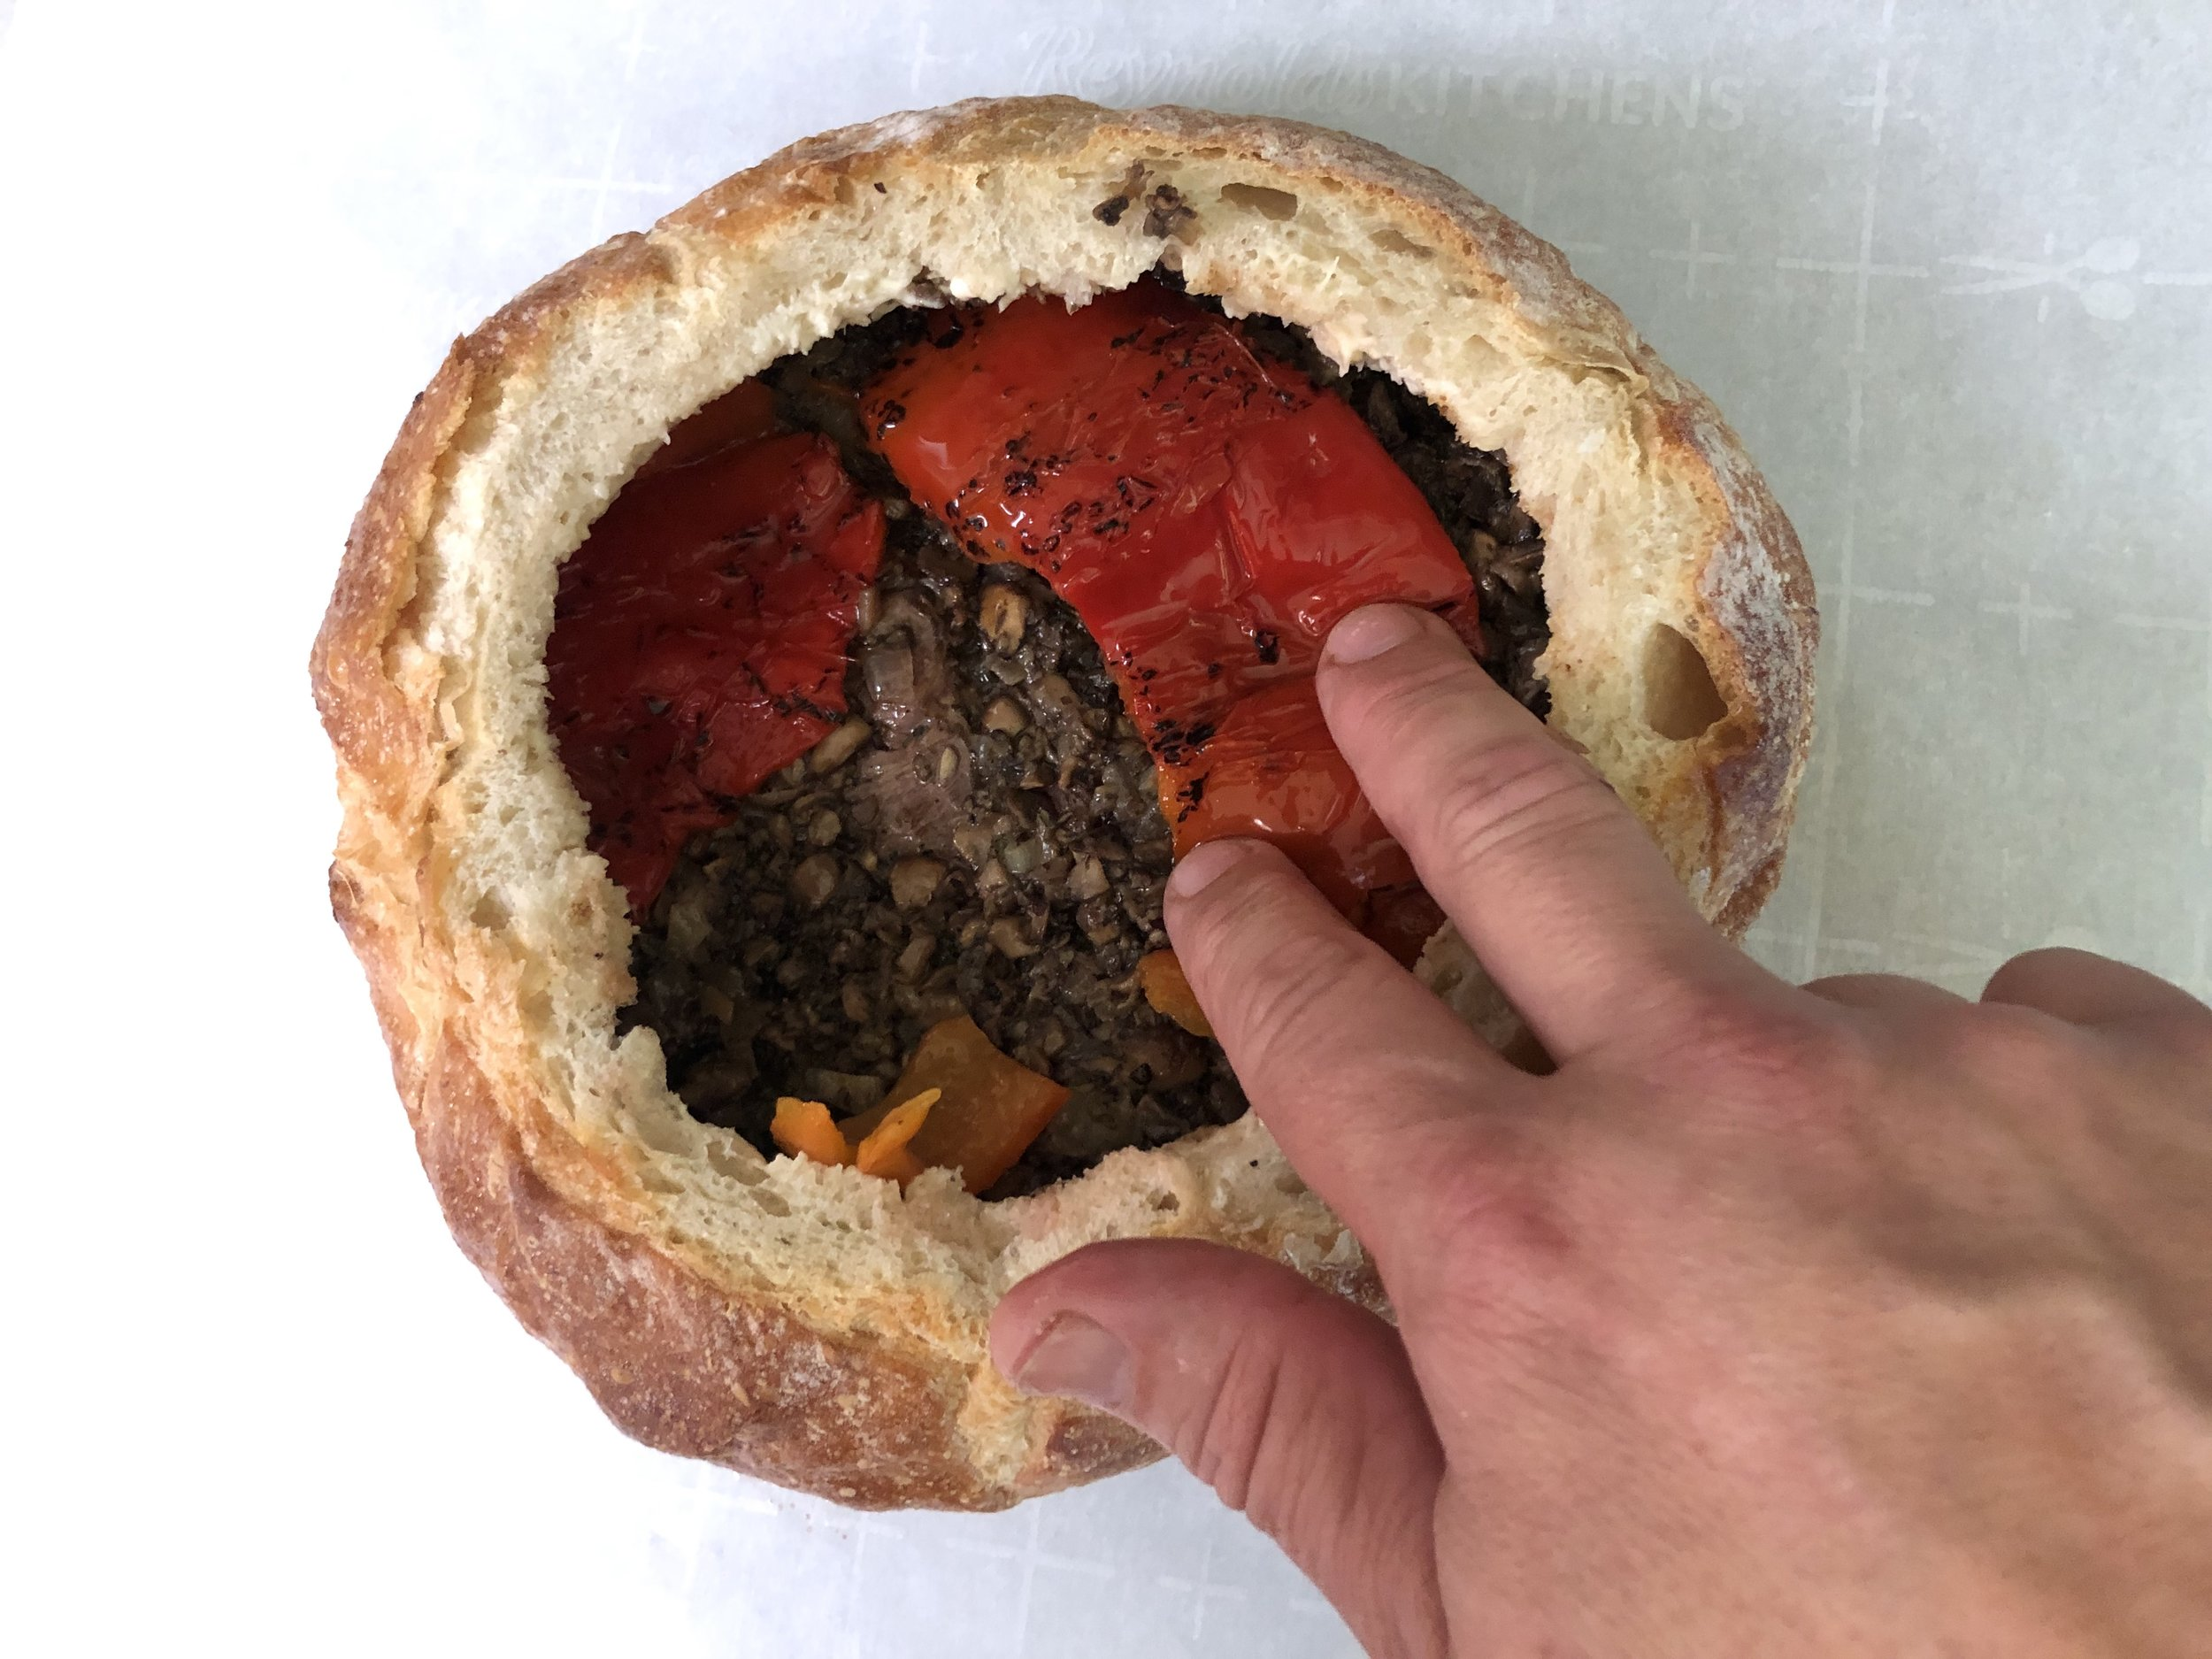 Layer in the steak, duxelles, then roasted red bell pepper, making sure to cover the entire diameter of the bread bowl.